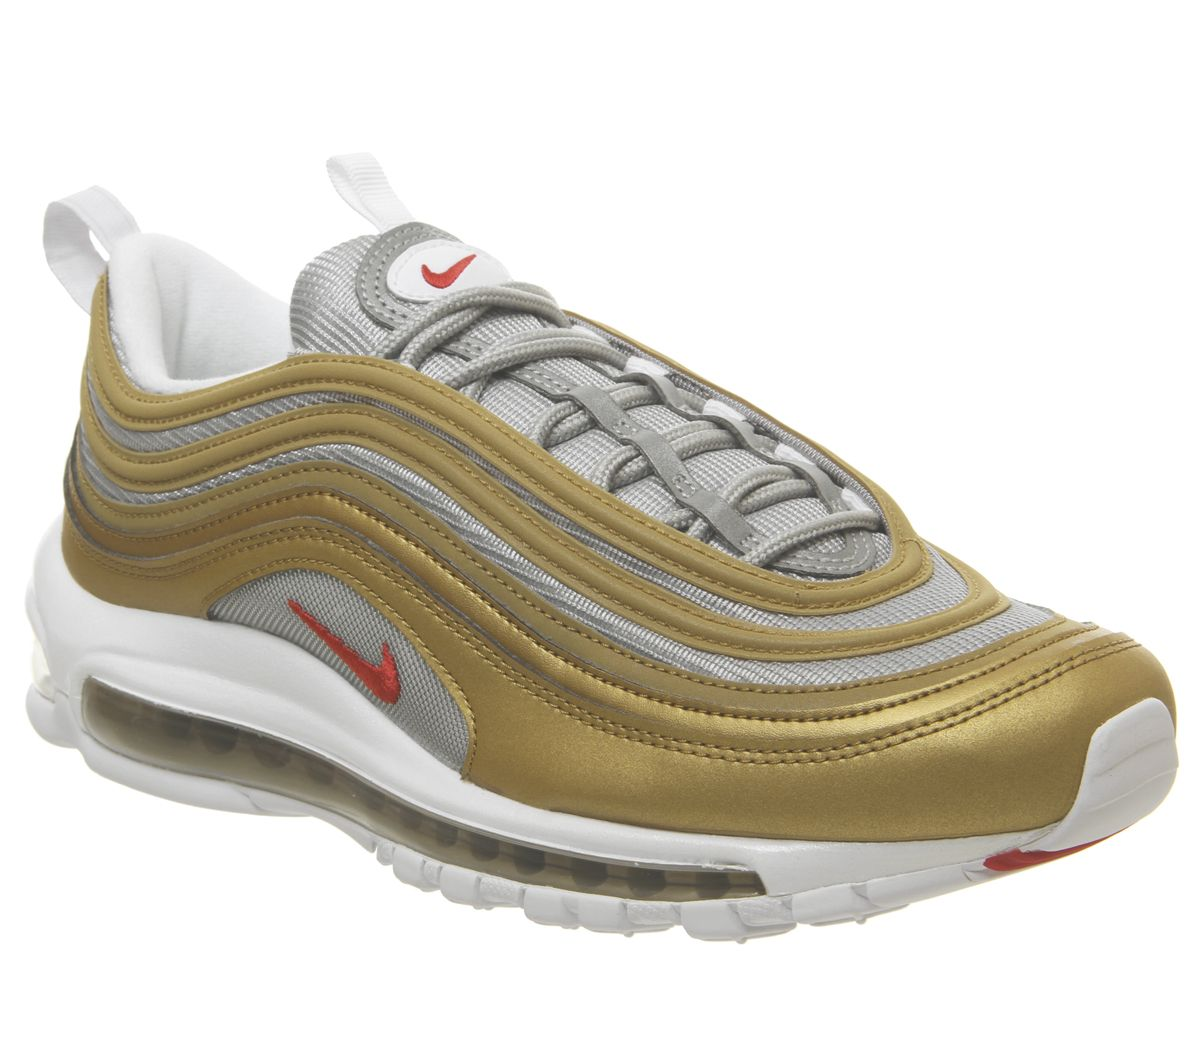 best website 7ed9a 94afc Air Max 97 Trainers